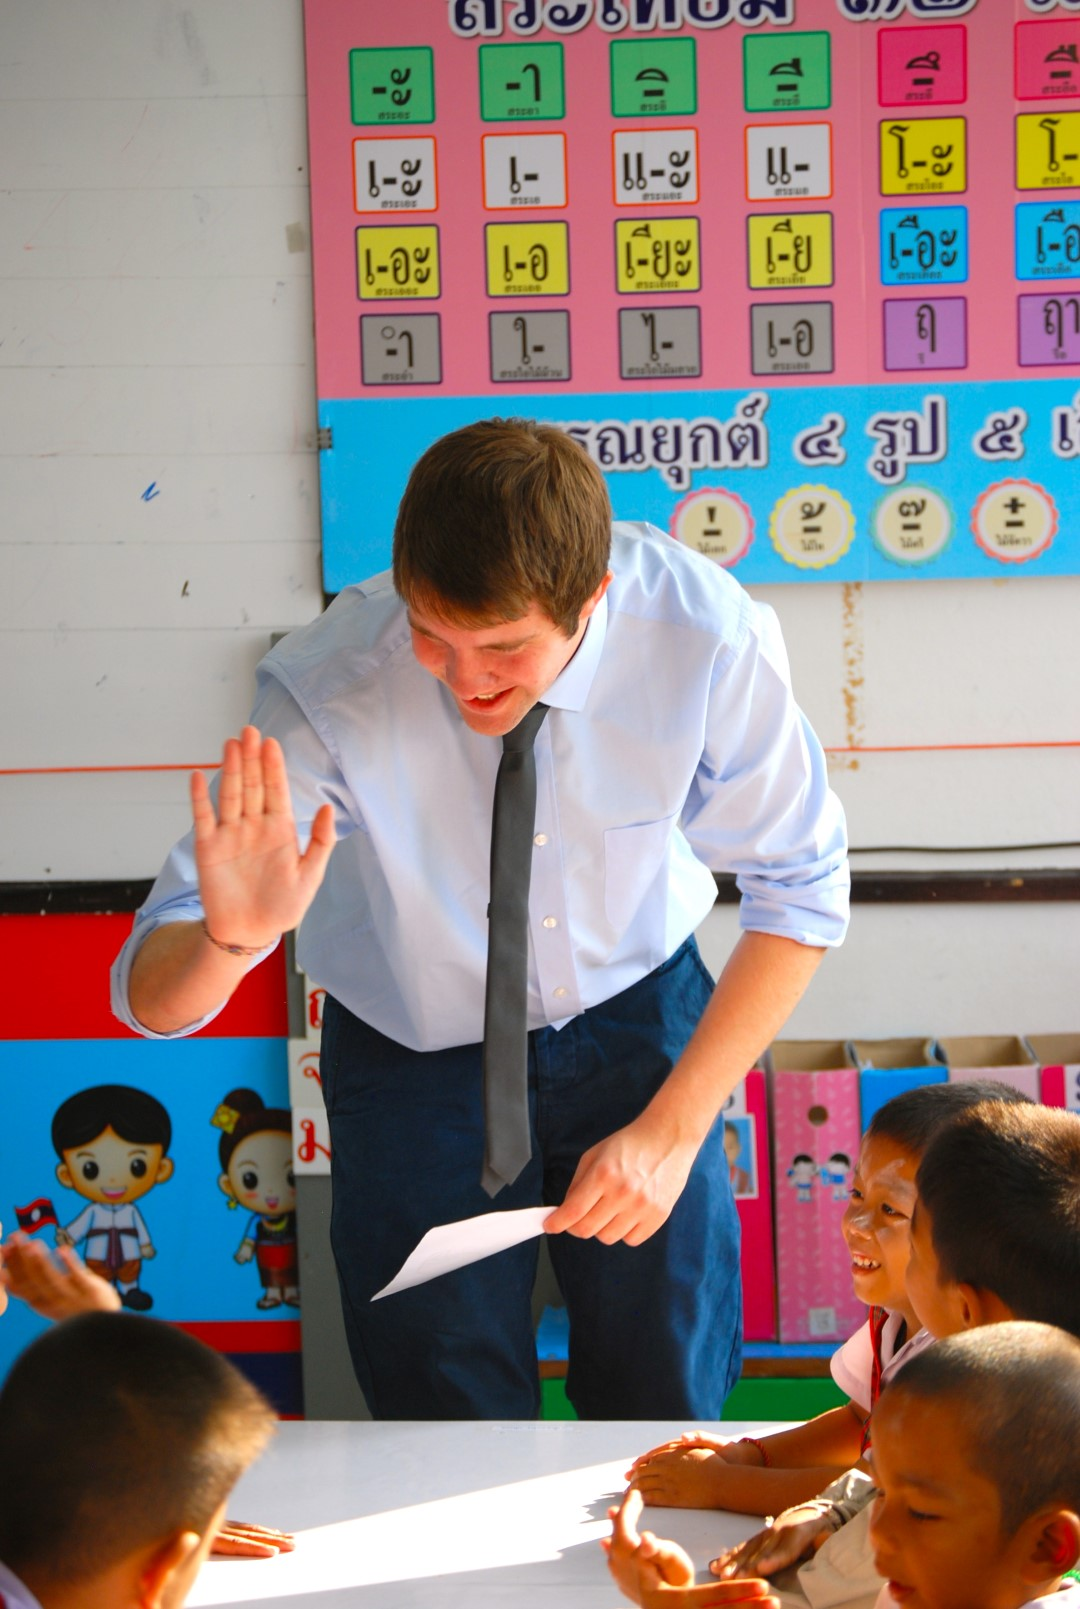 Confessions of a TEFL teacher